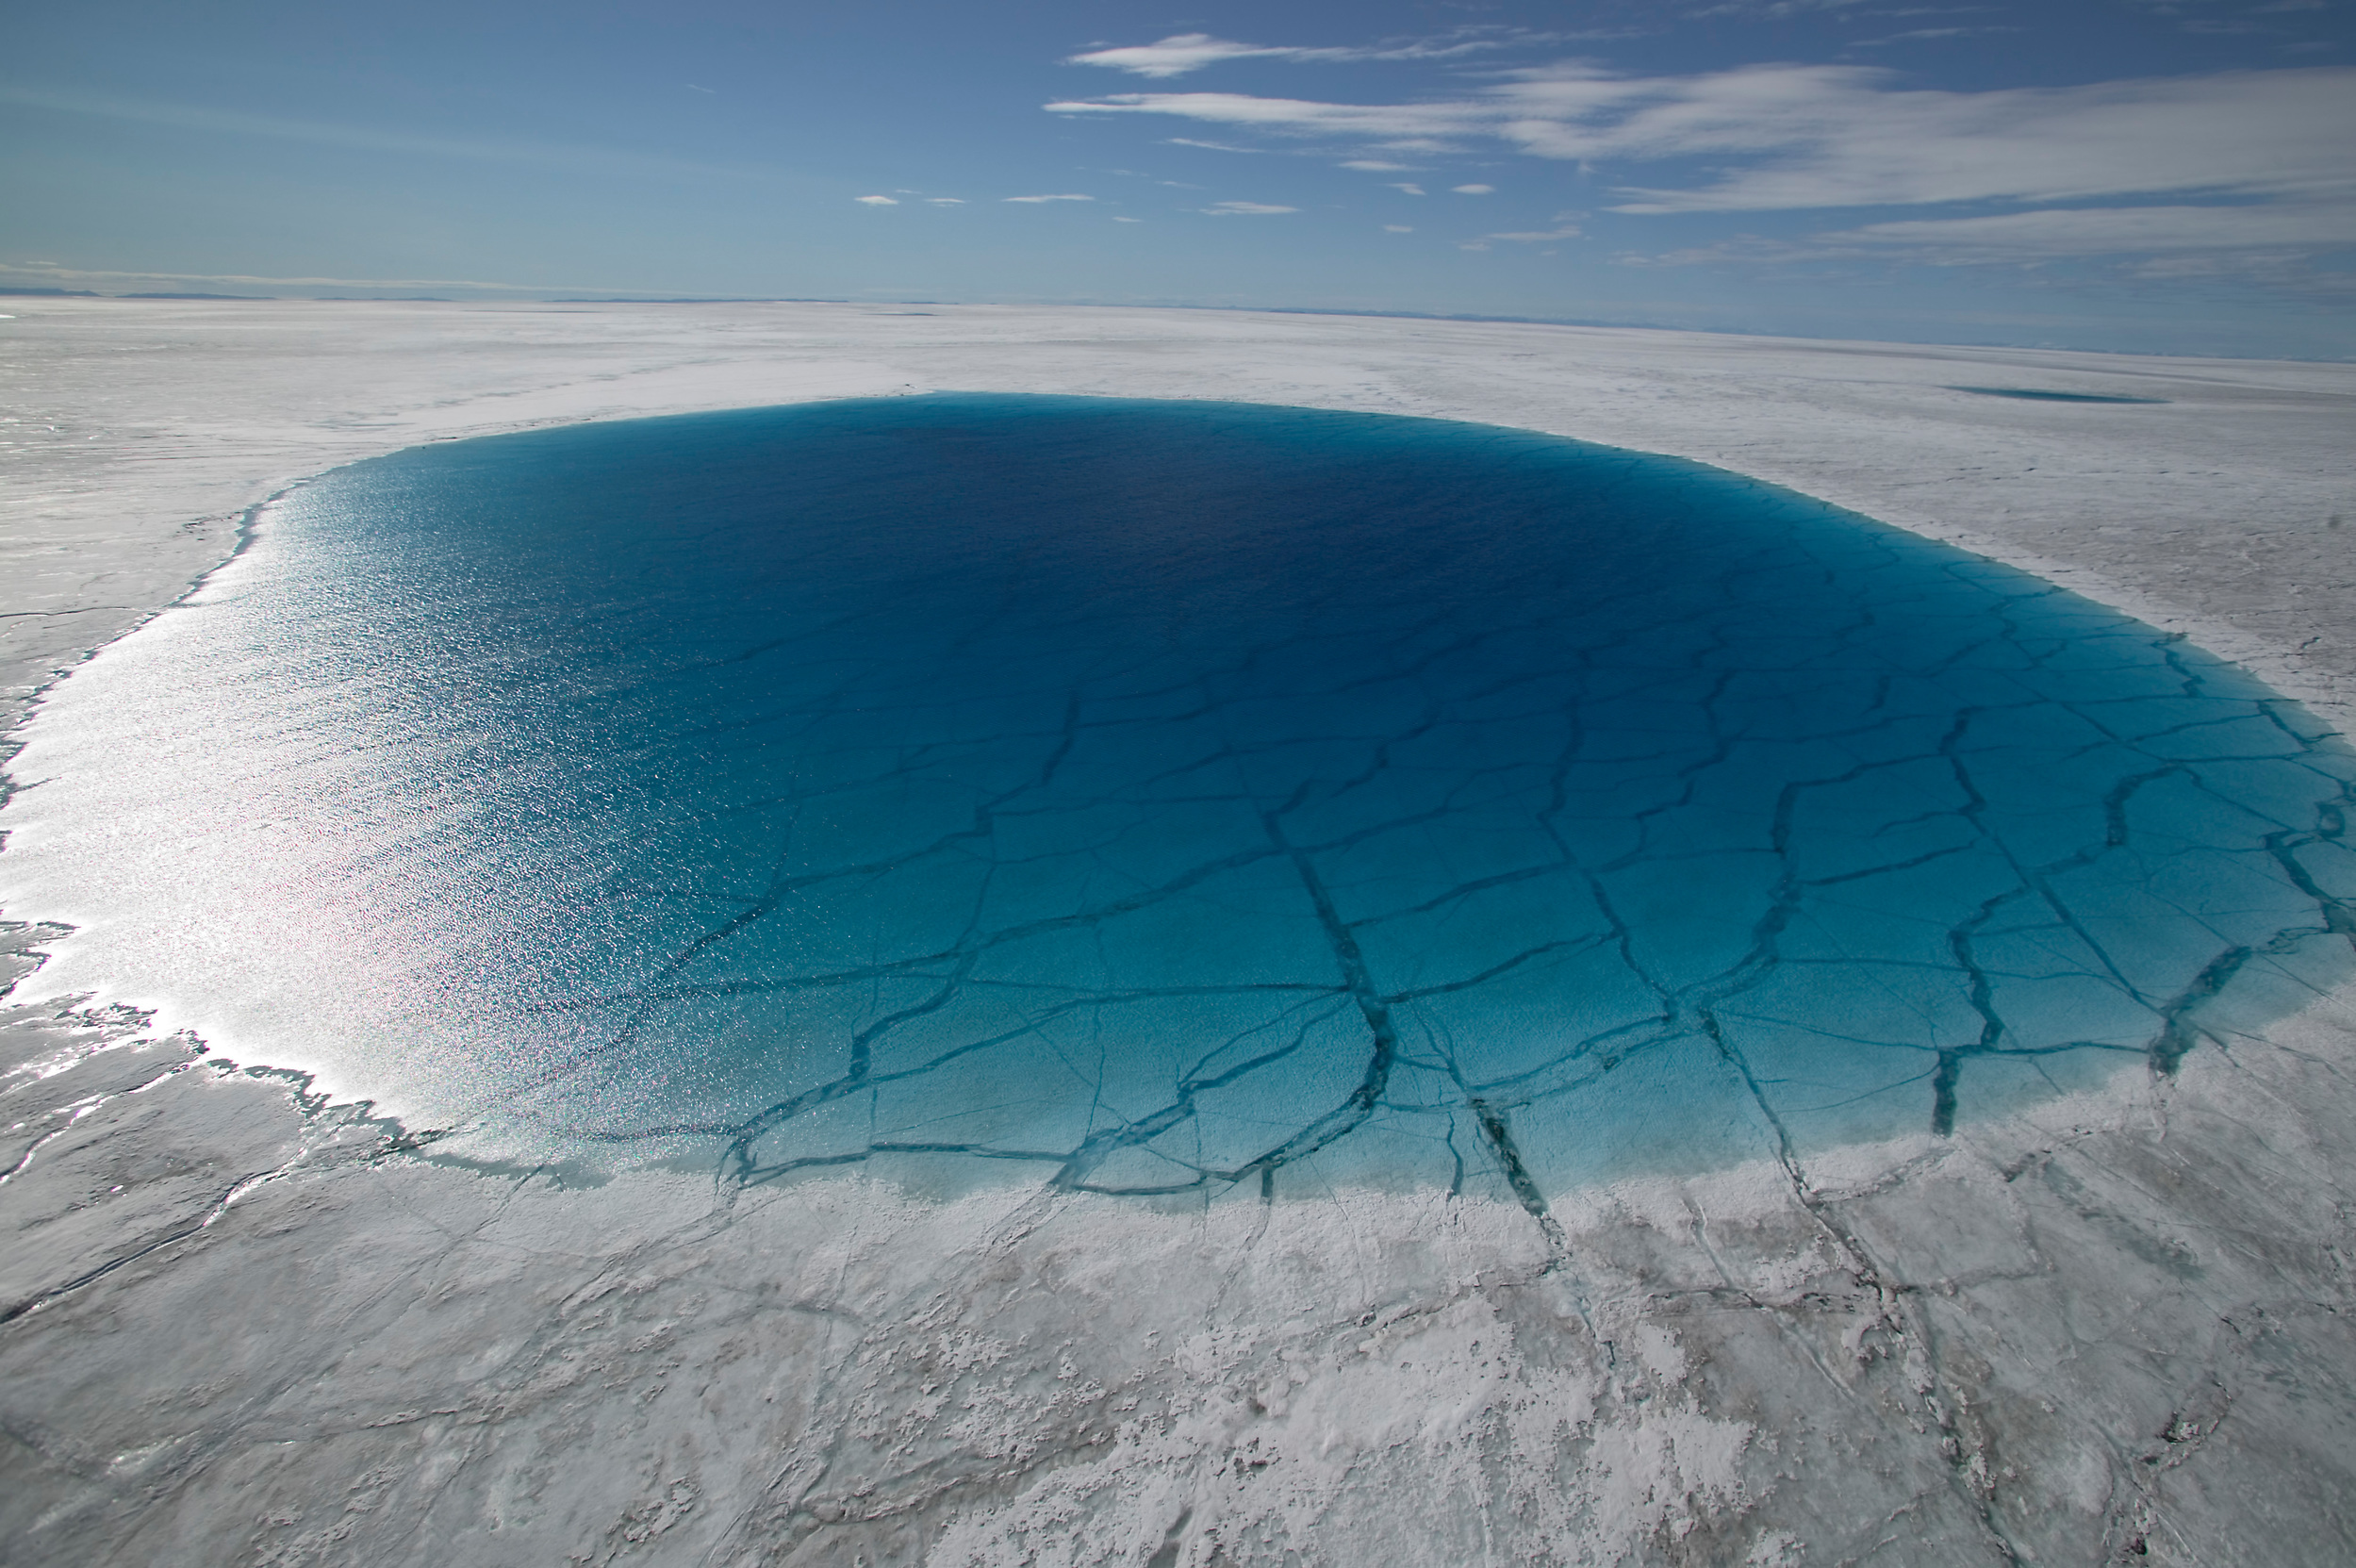 blue melt lake in the middle of ice